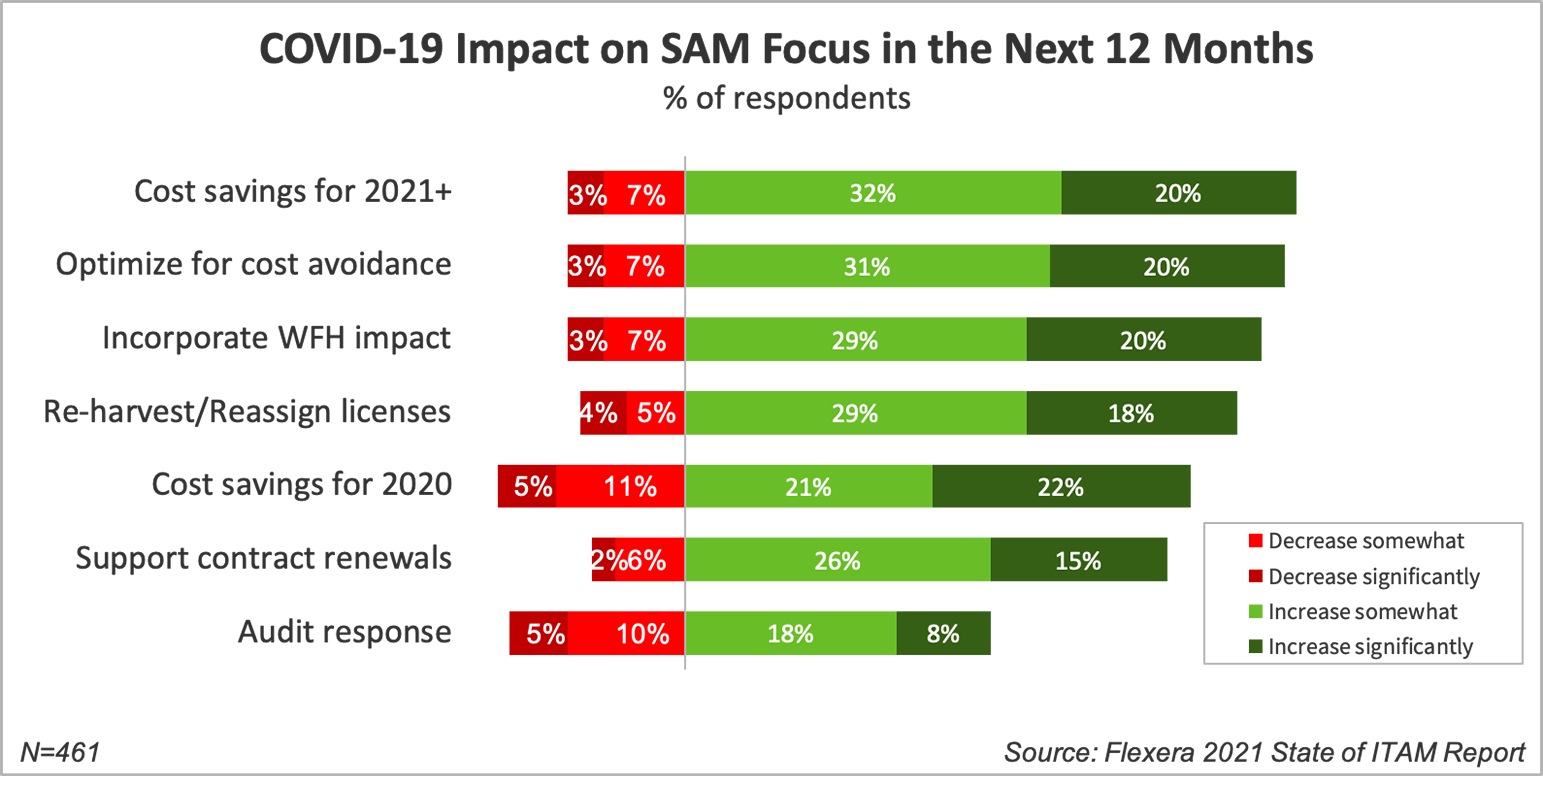 COVID-19 Impact on SAM Focus in the Next 12 Months